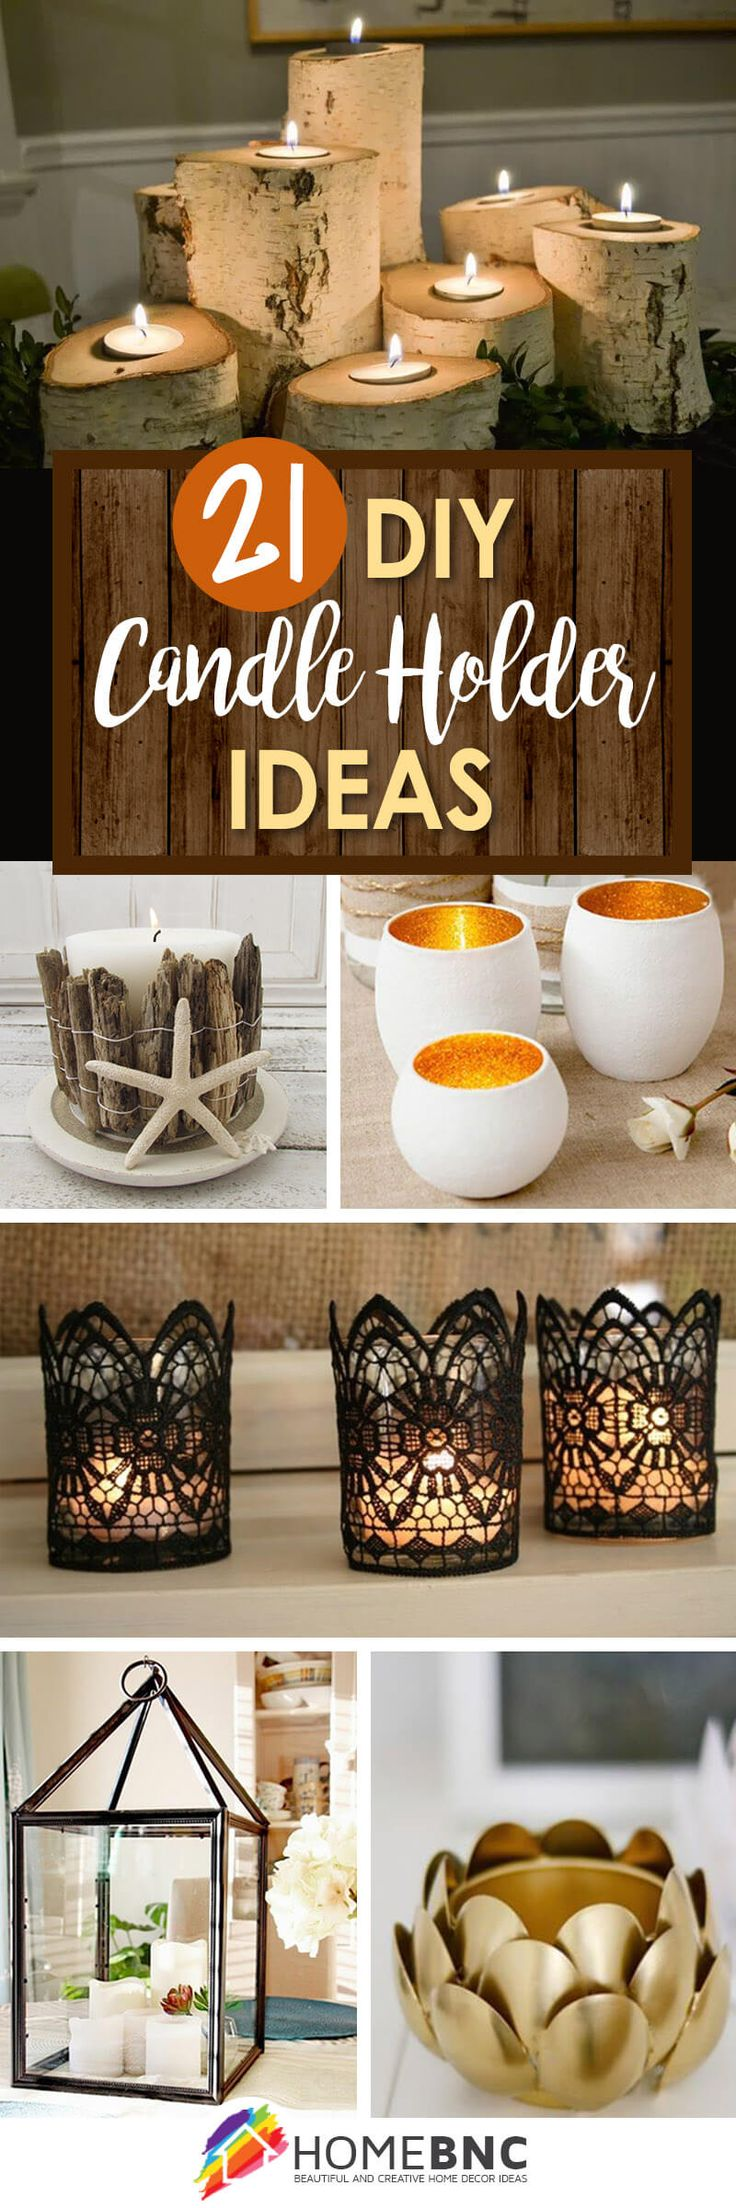 best 25 diy candle holders ideas on pinterest diy. Black Bedroom Furniture Sets. Home Design Ideas